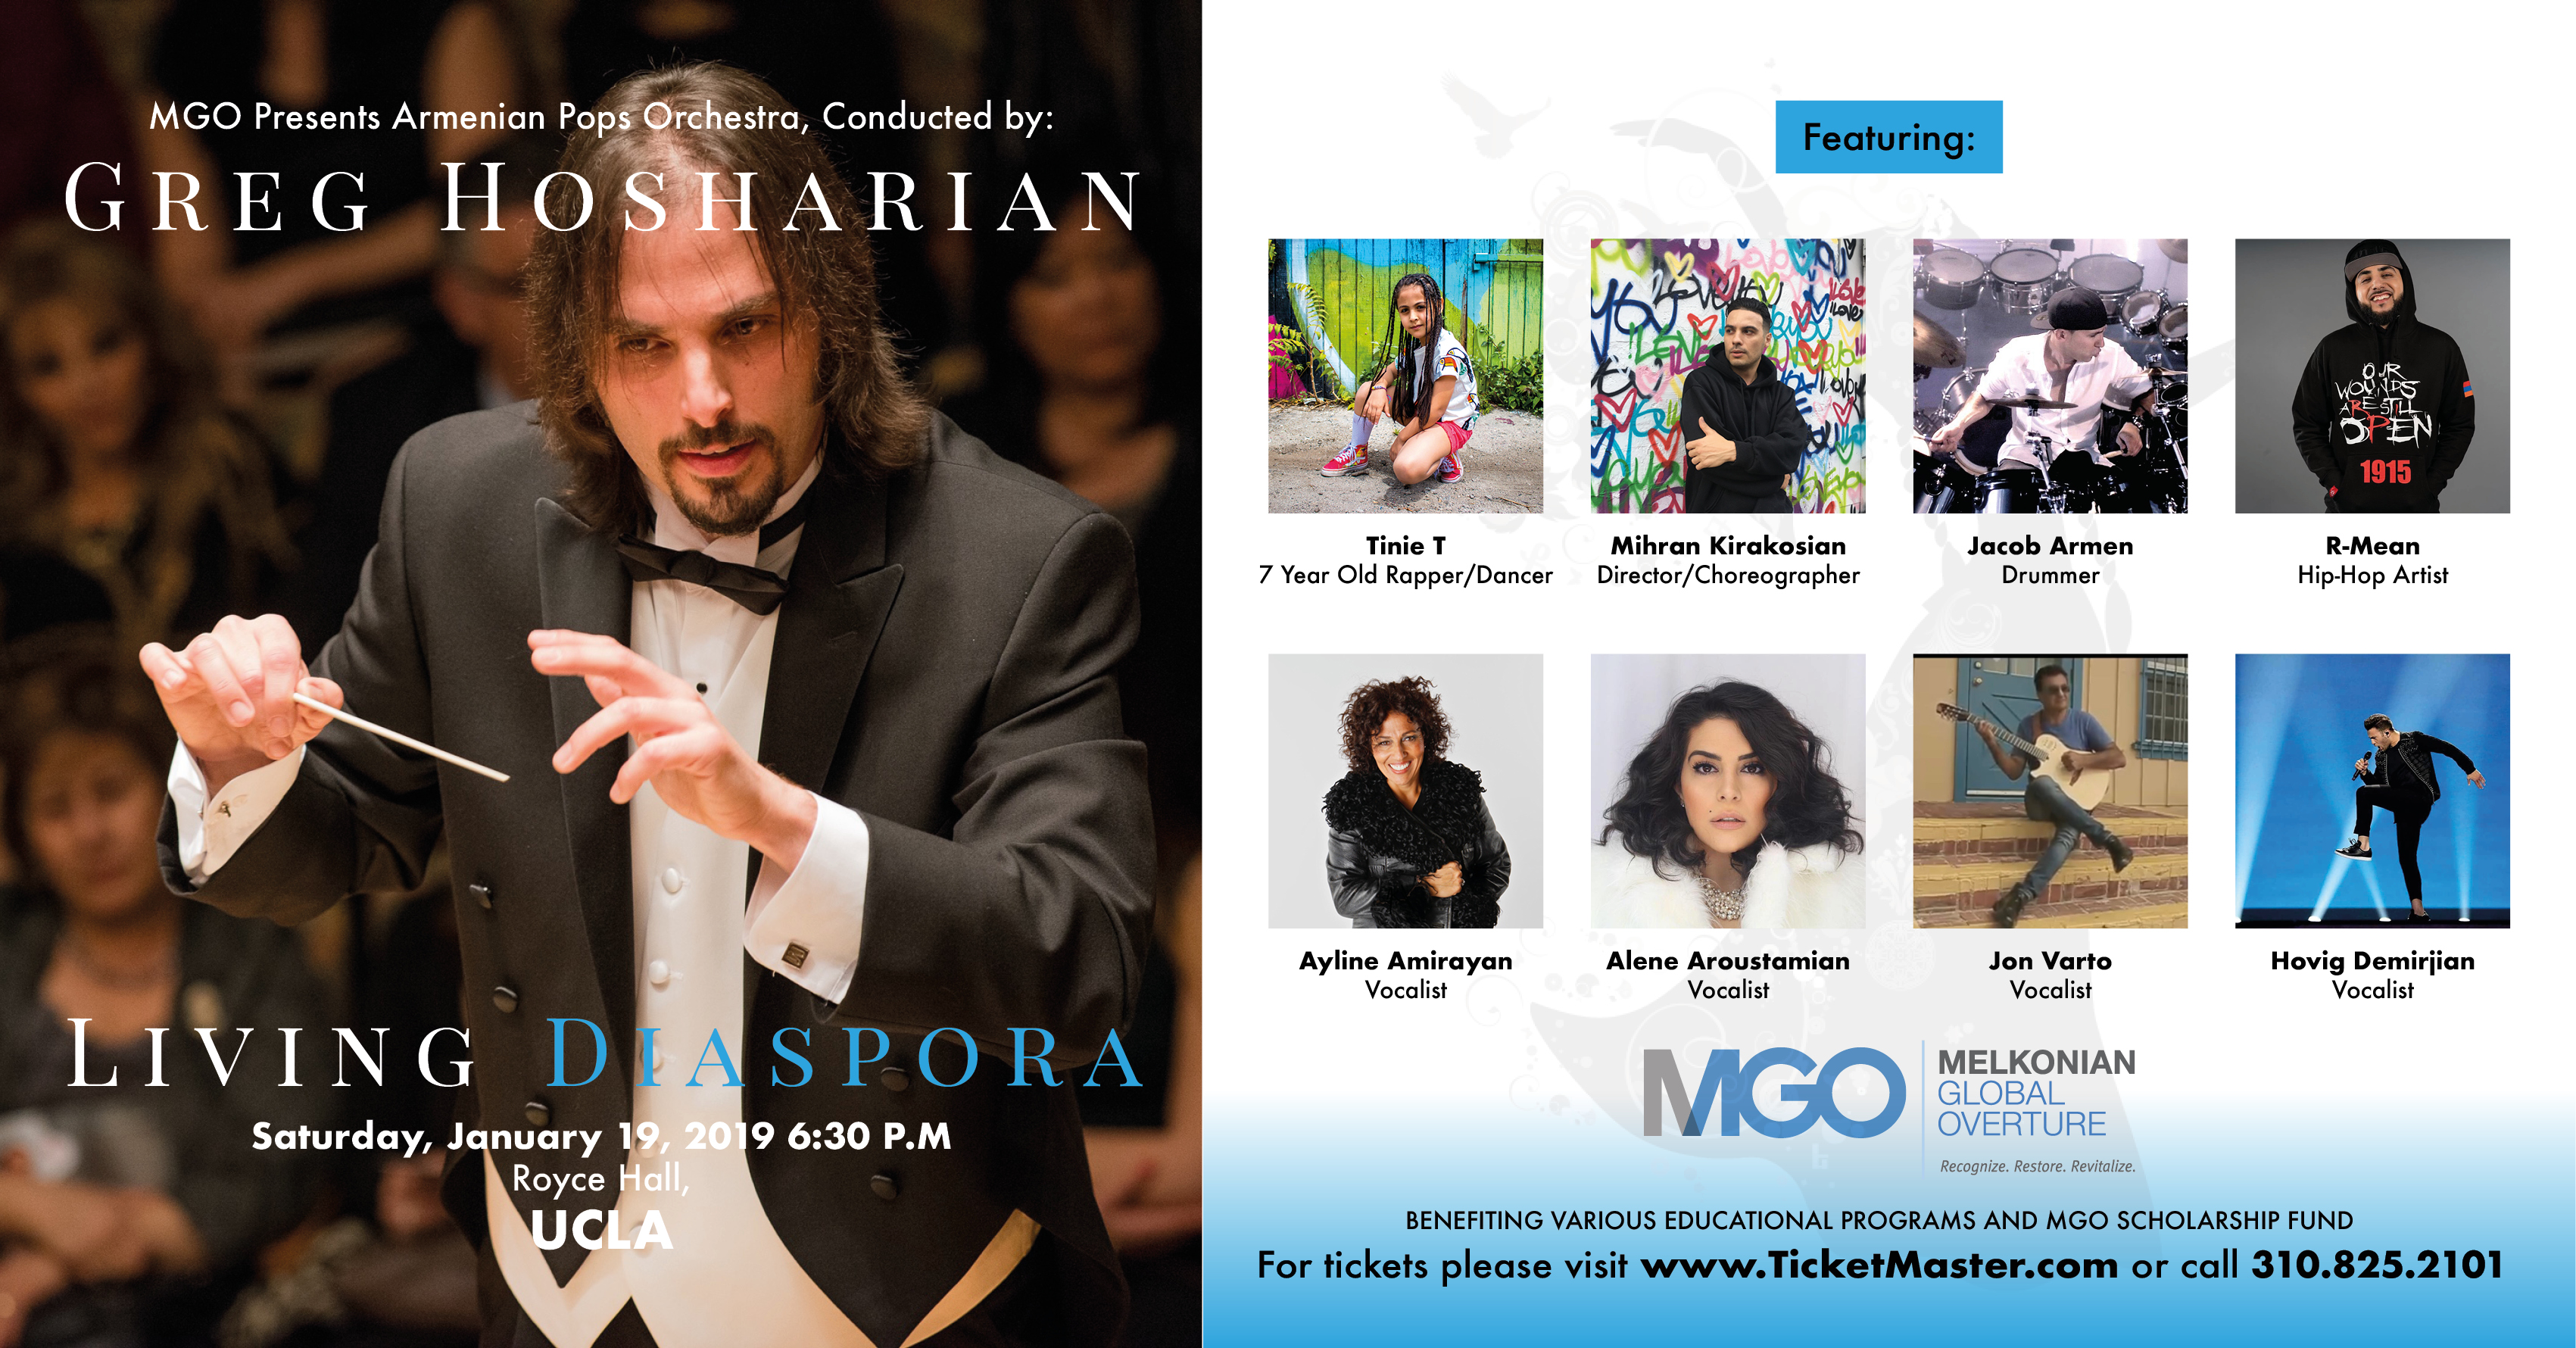 Living Diaspora - Melkonian Global Overture Supporting Armenian Language, Culture And Youth